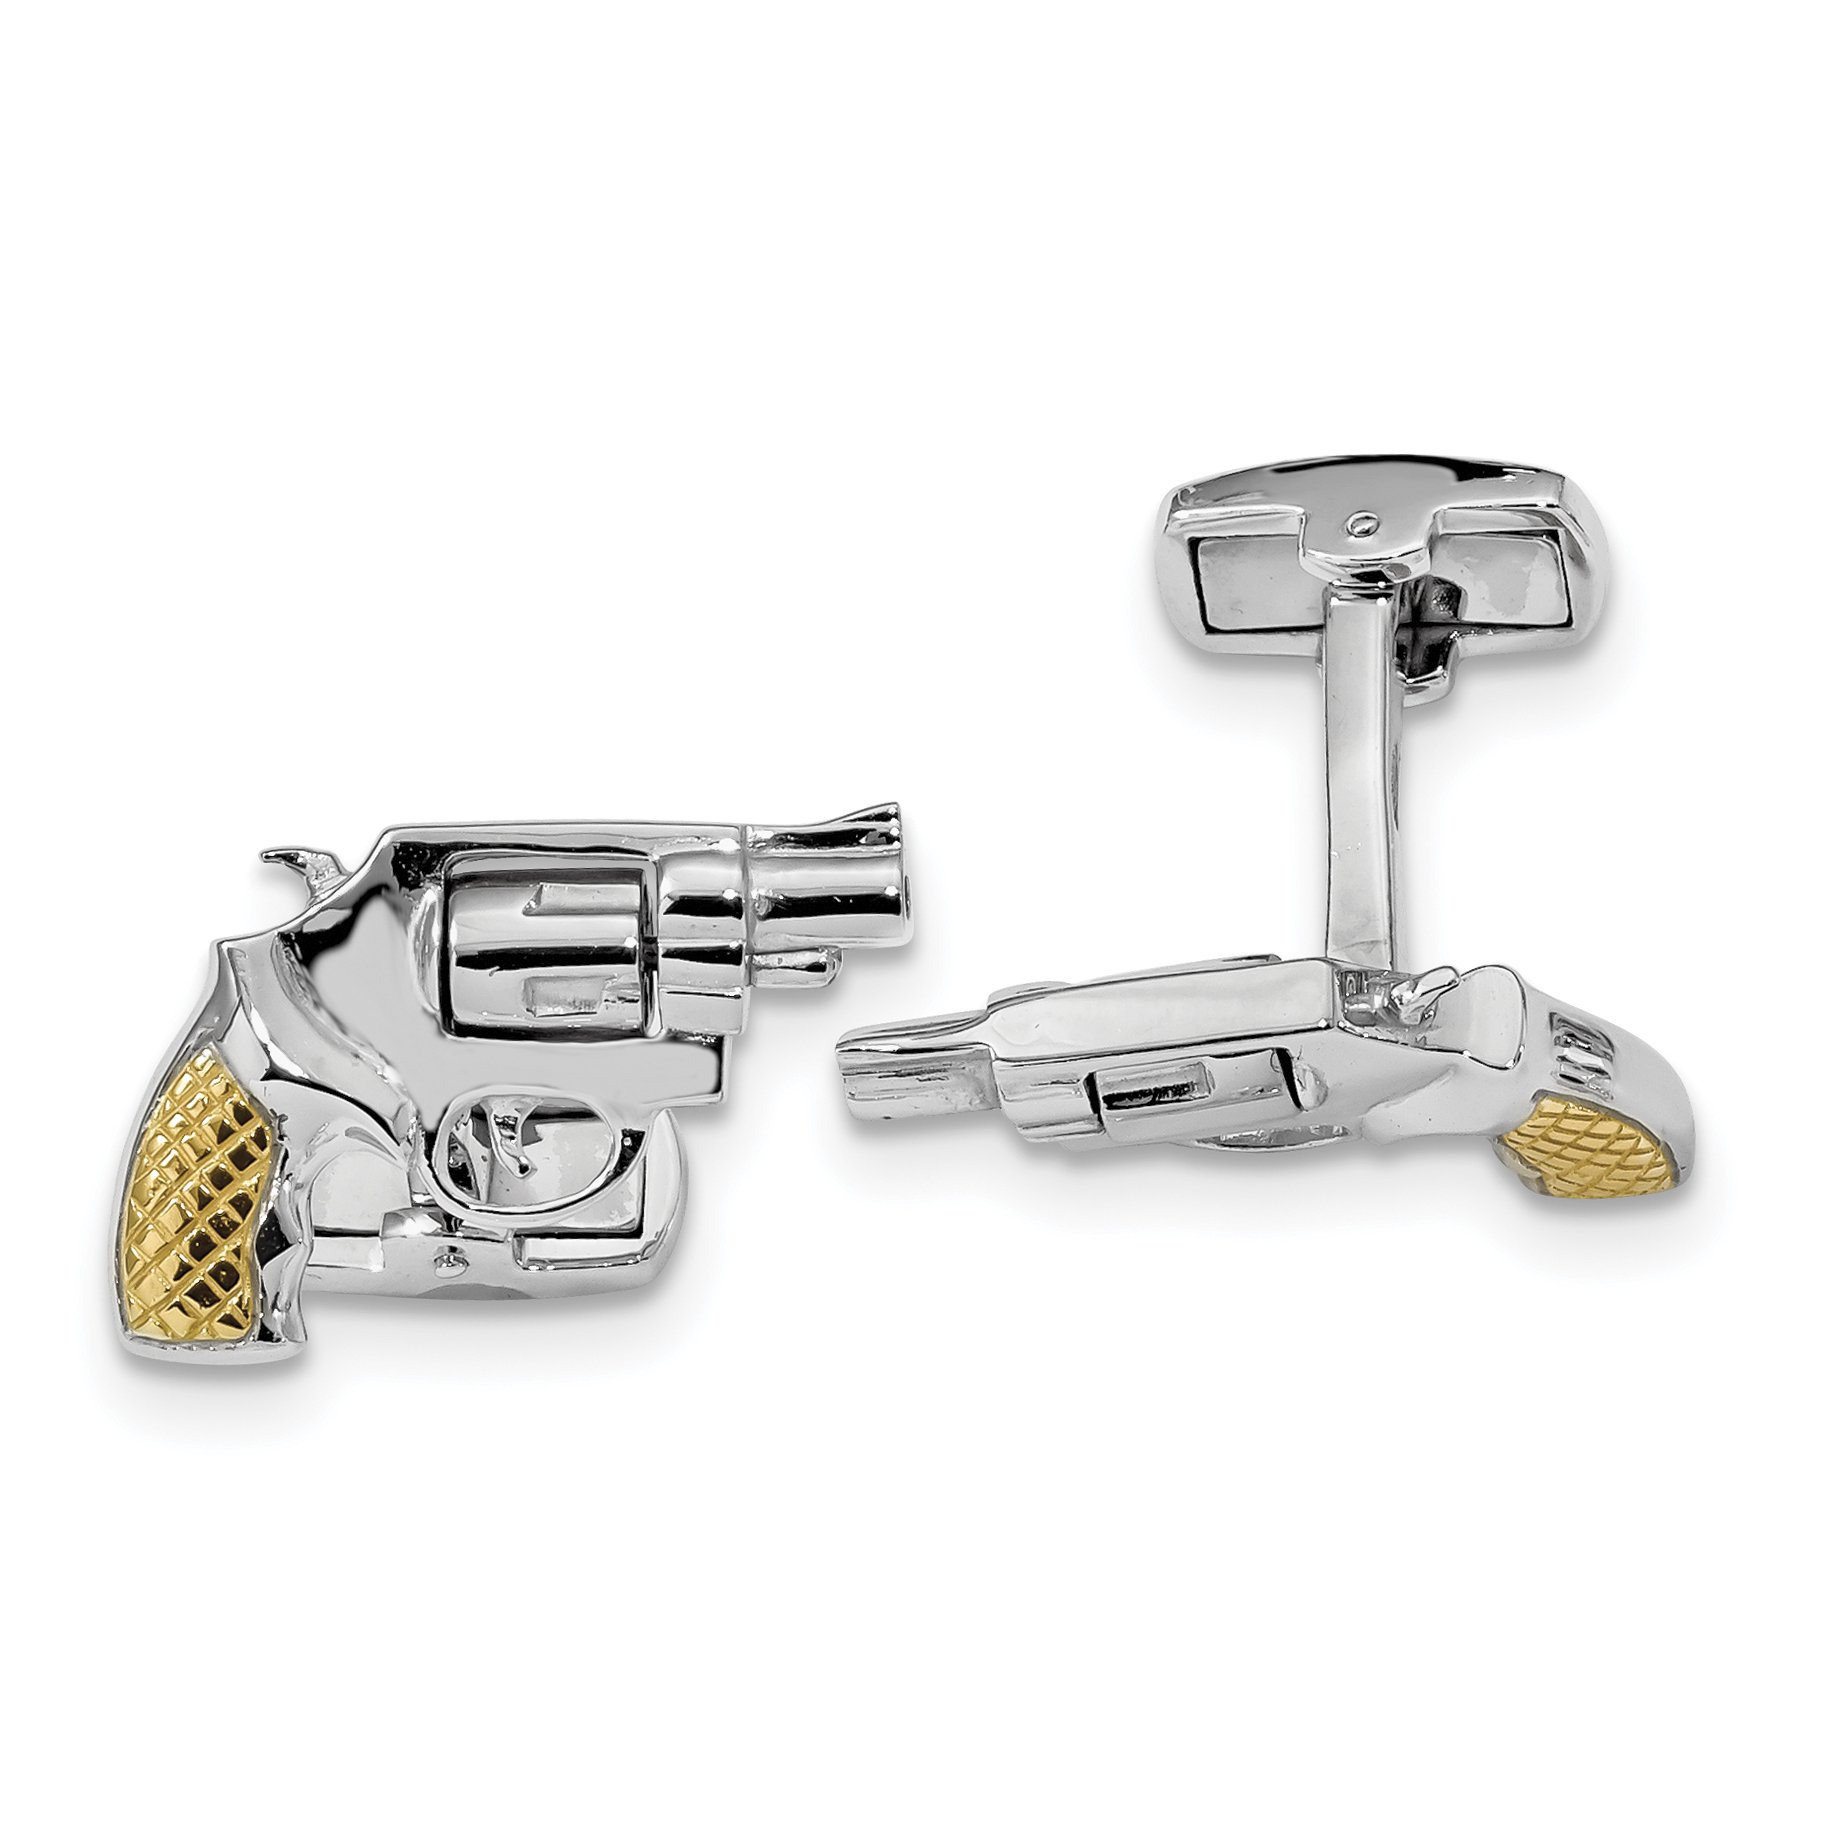 ICE CARATS 925 Sterling Silver Gold Plated Revolver Moveable Barrel Cuff Links Mens Cufflinks Link Fine Jewelry Dad Mens Gift Set by ICE CARATS (Image #1)